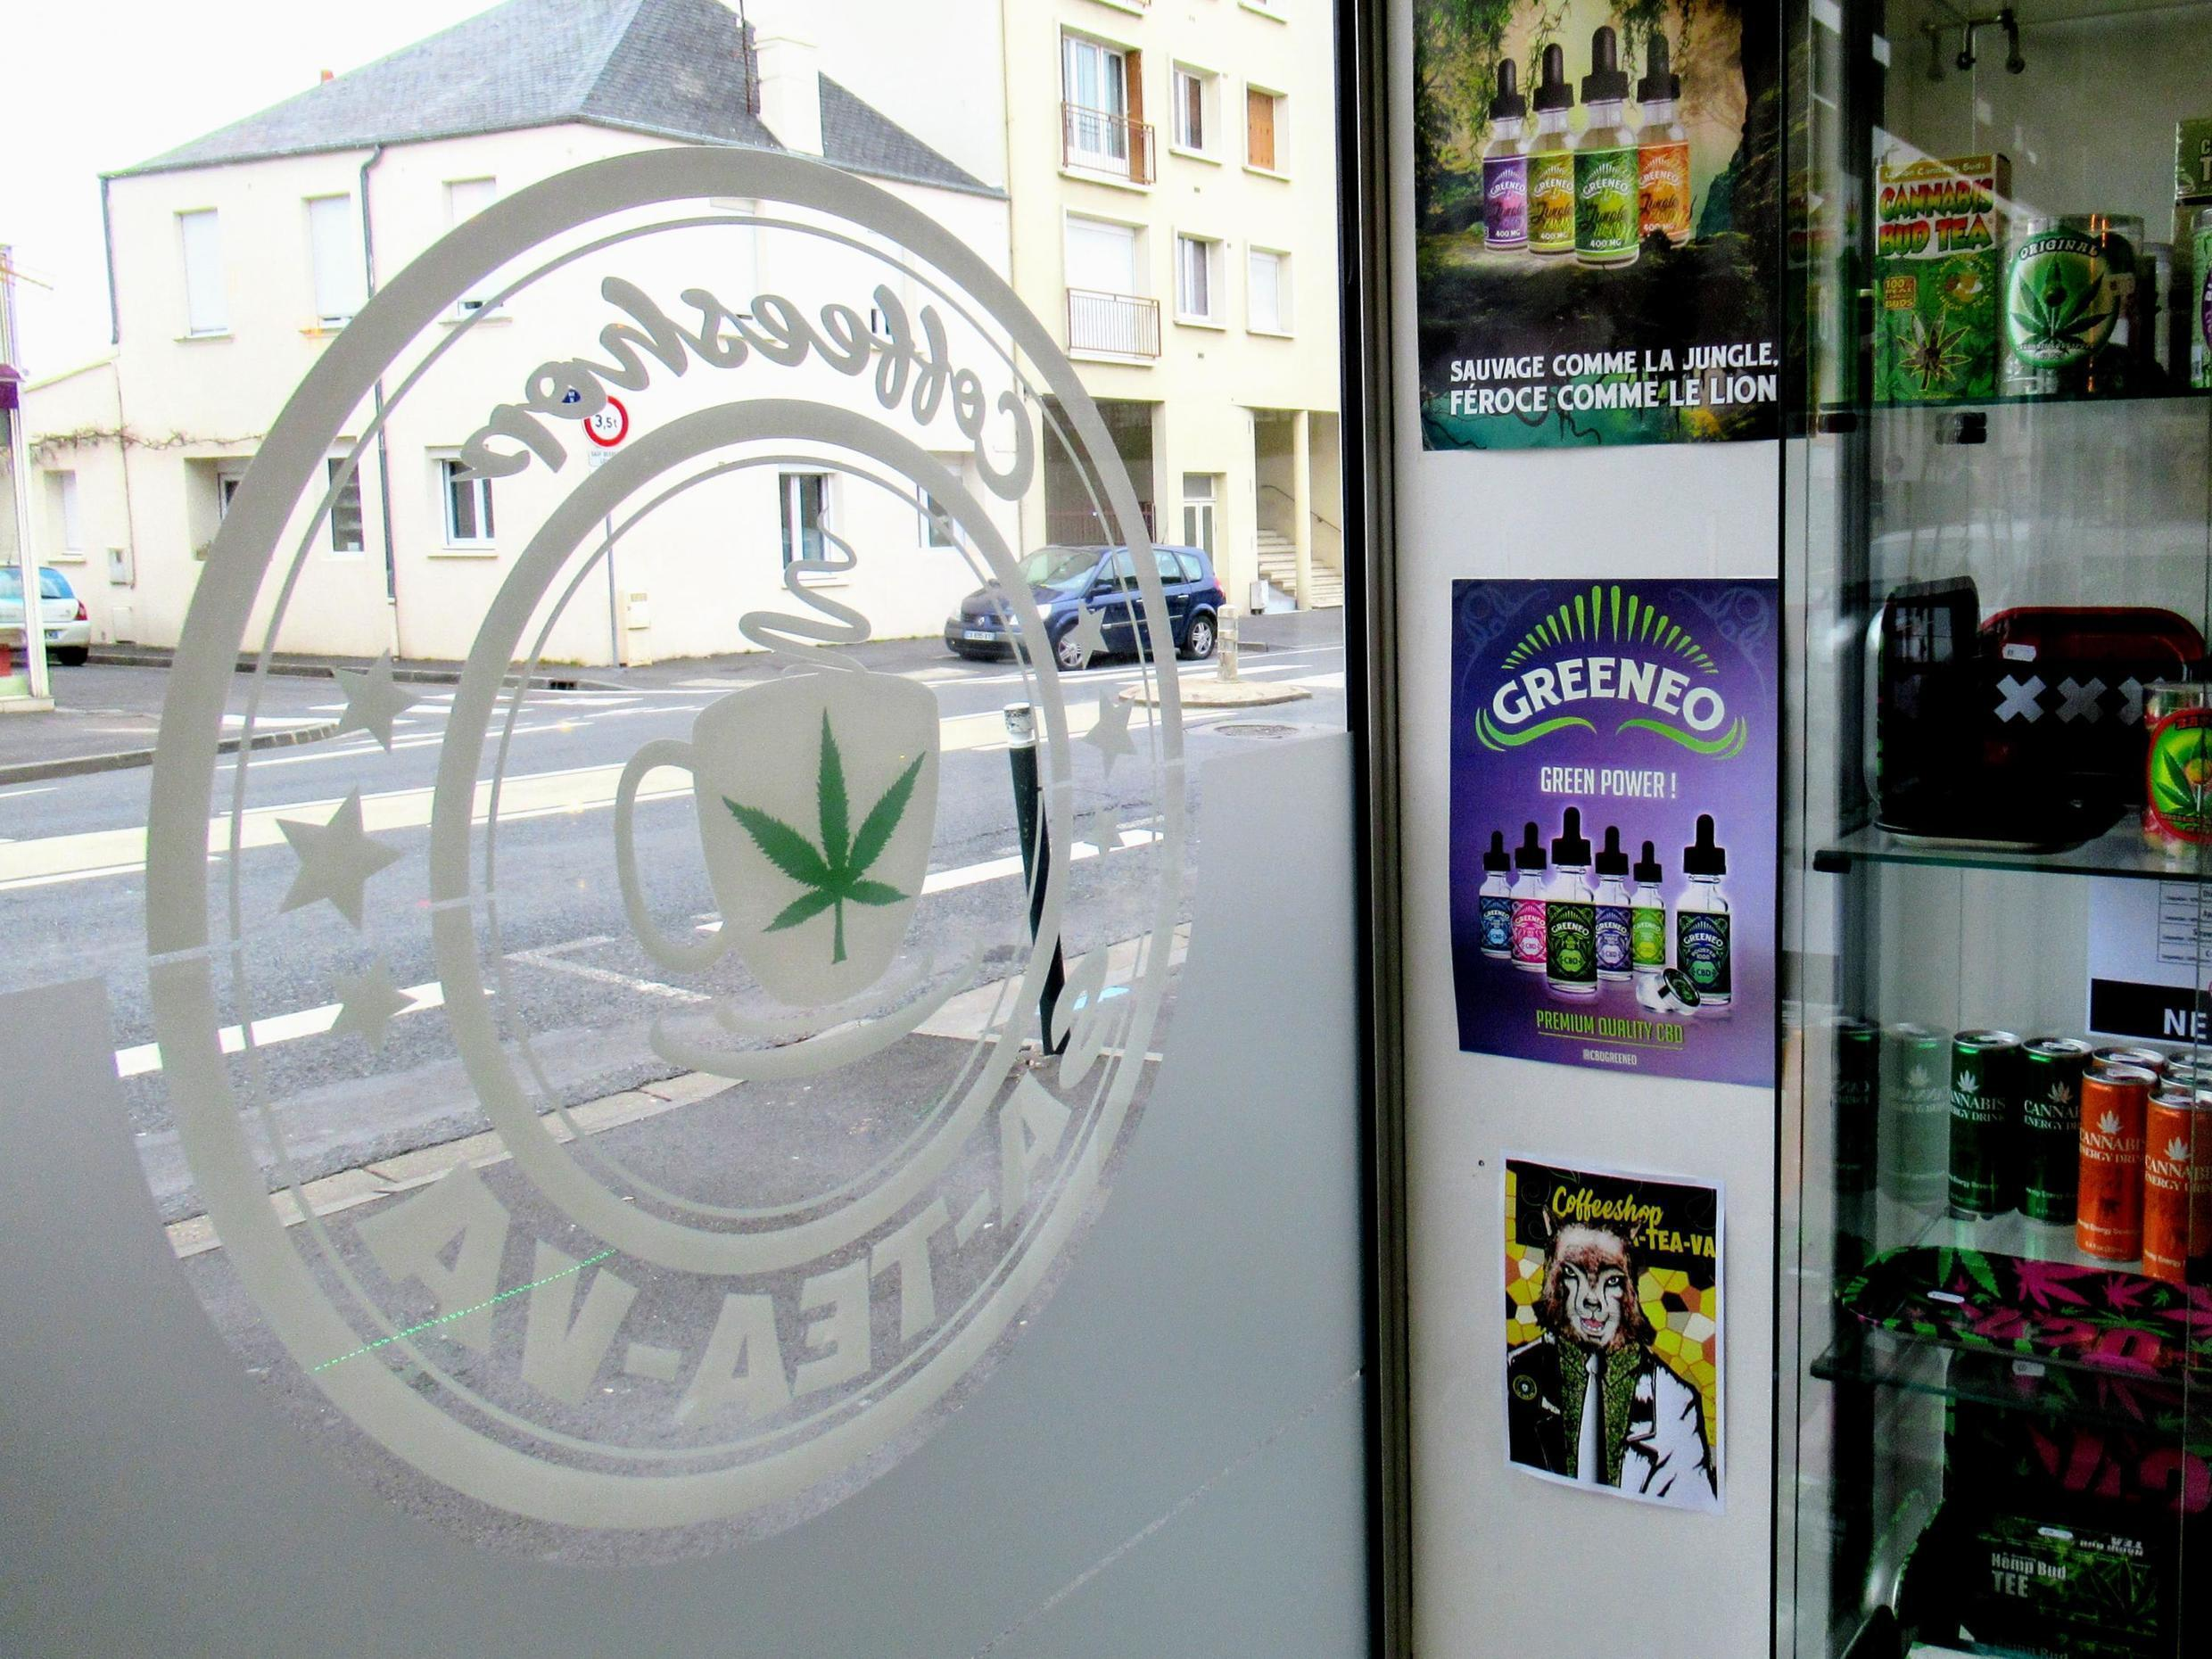 The logo of the shop includes a leaf, that is not technically a cannabis leaf